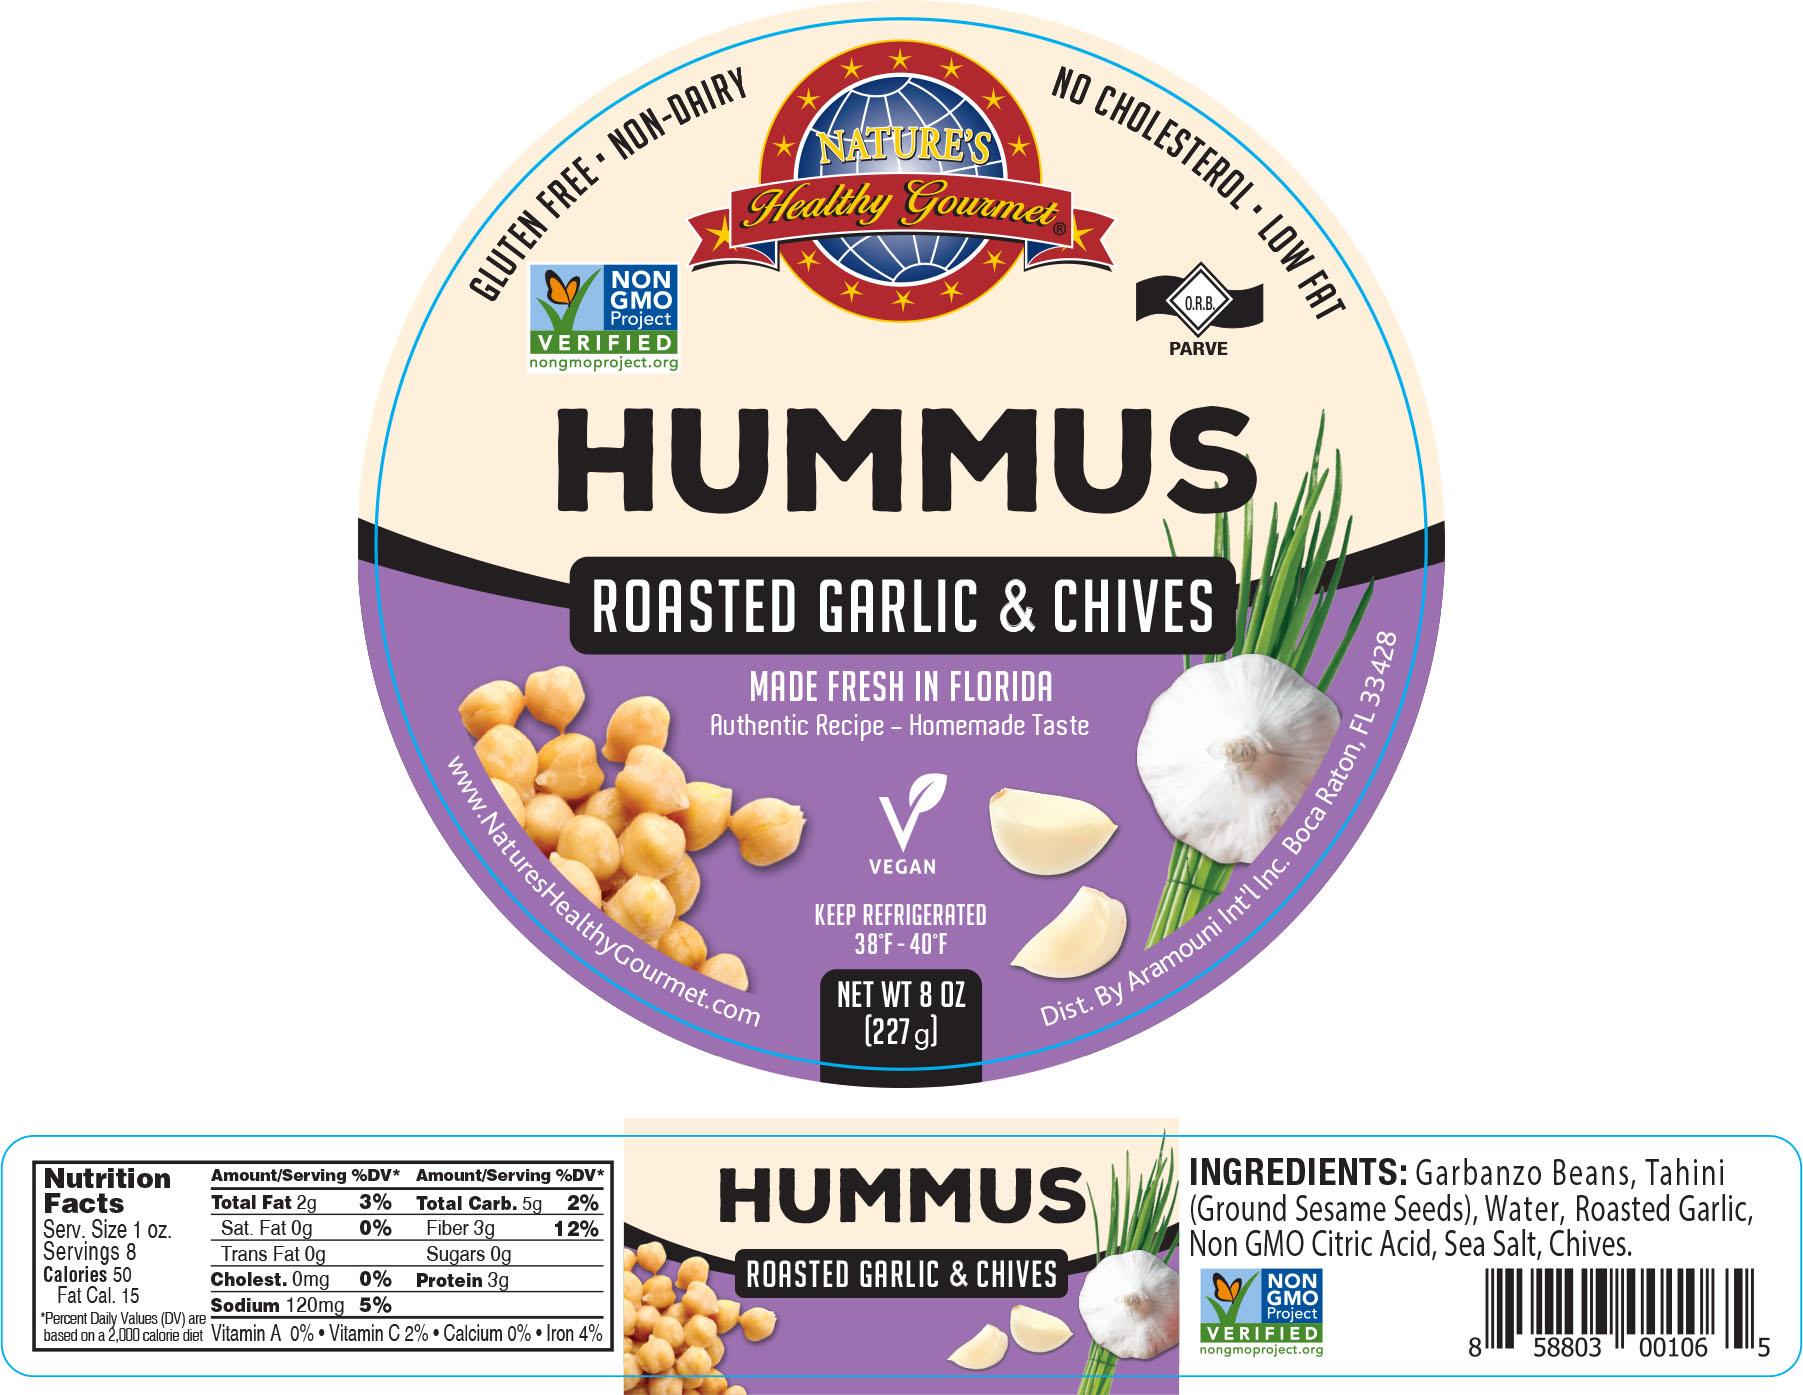 Nature's Roasted Garlic hives Hummus